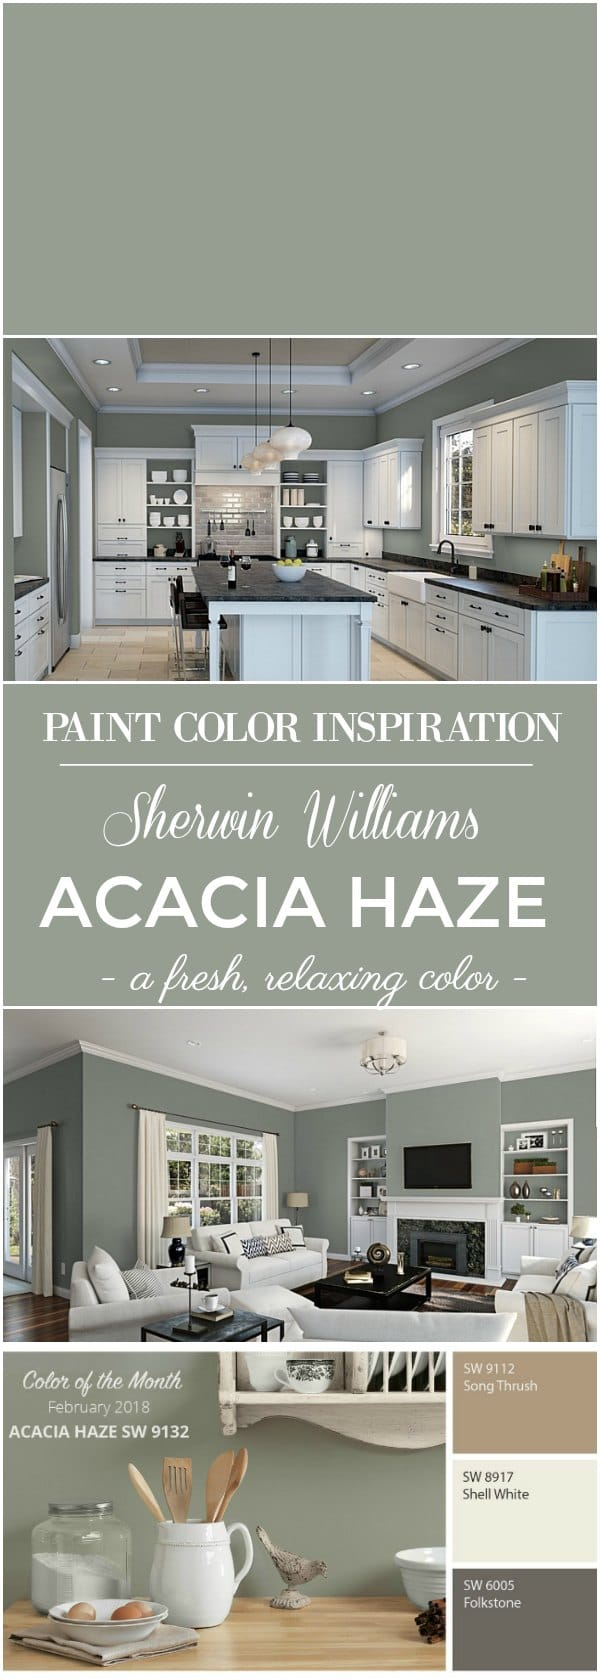 Paint Color Inspiration: Sherwin Williams Acacia Green for walls.